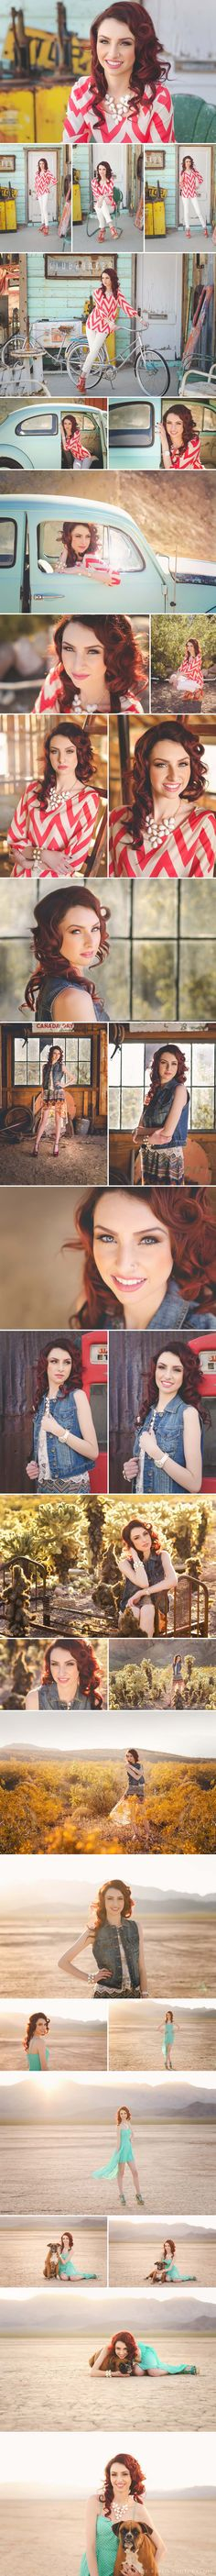 Savannah | Las Vegas Senior Photographer